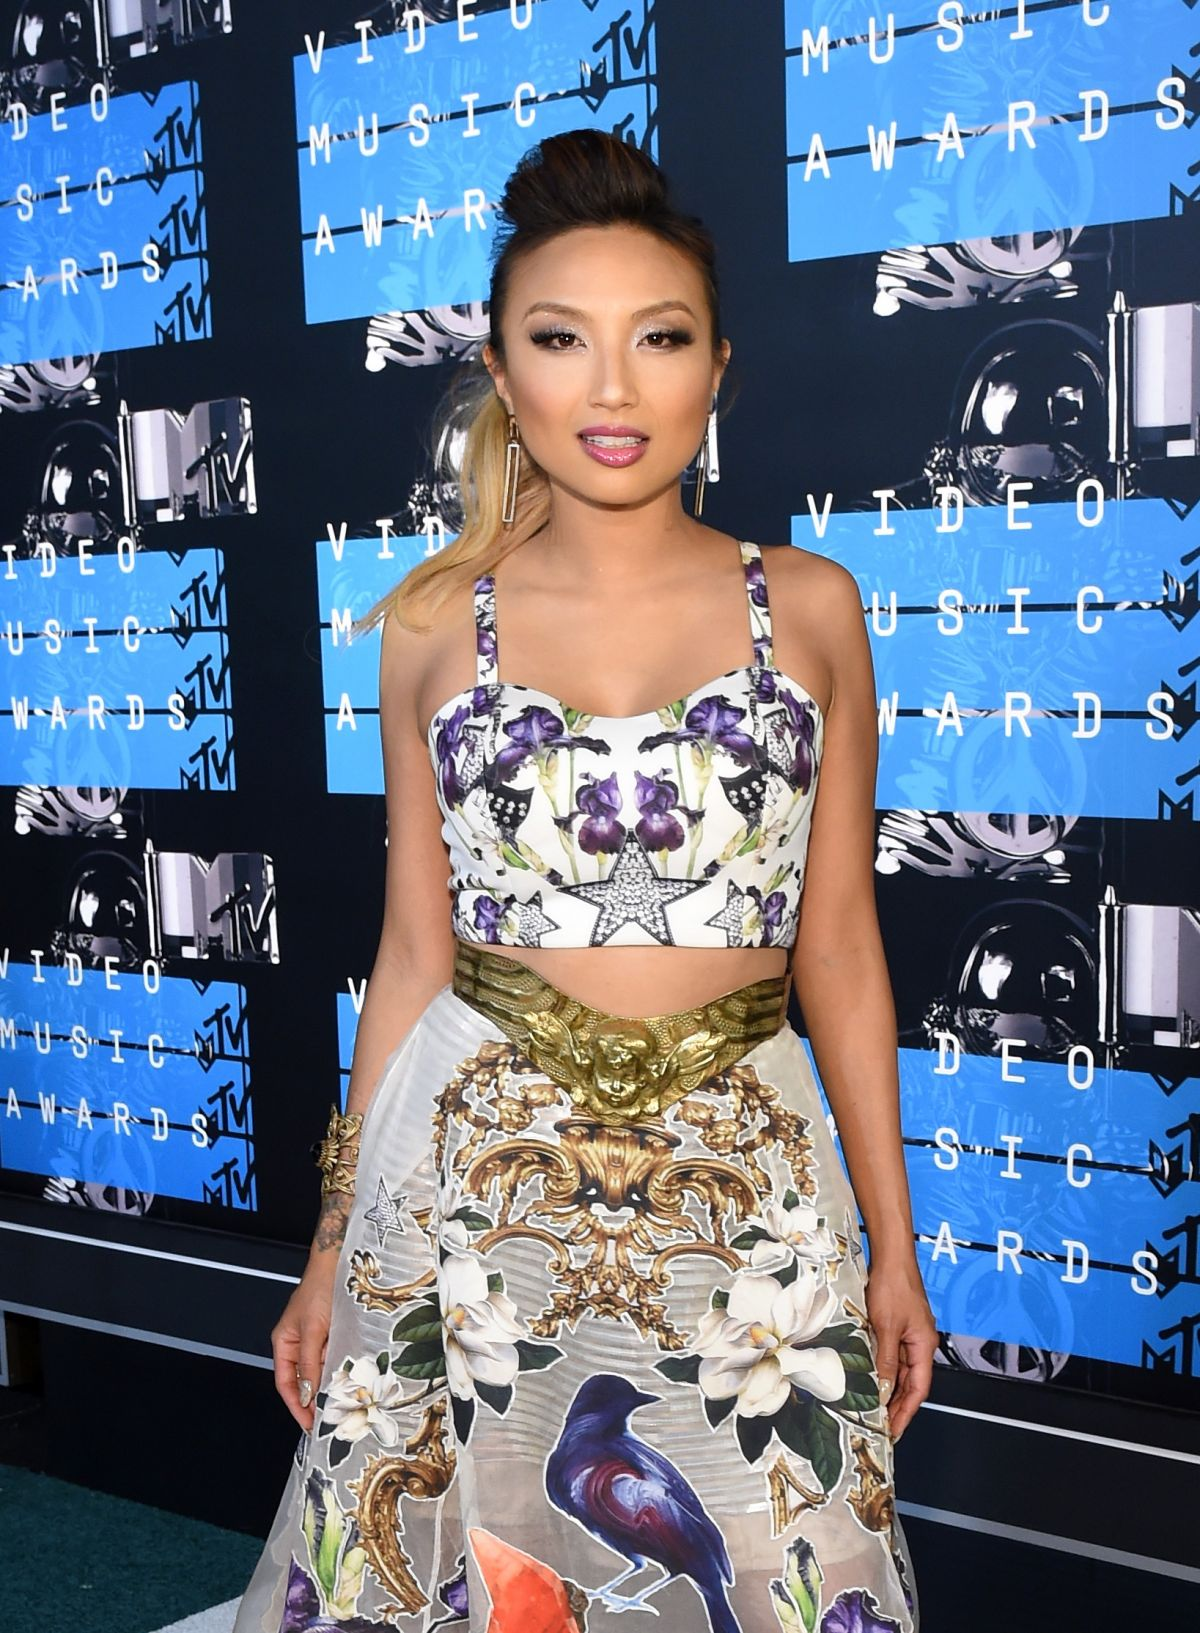 Video Jeannie Mai nude photos 2019